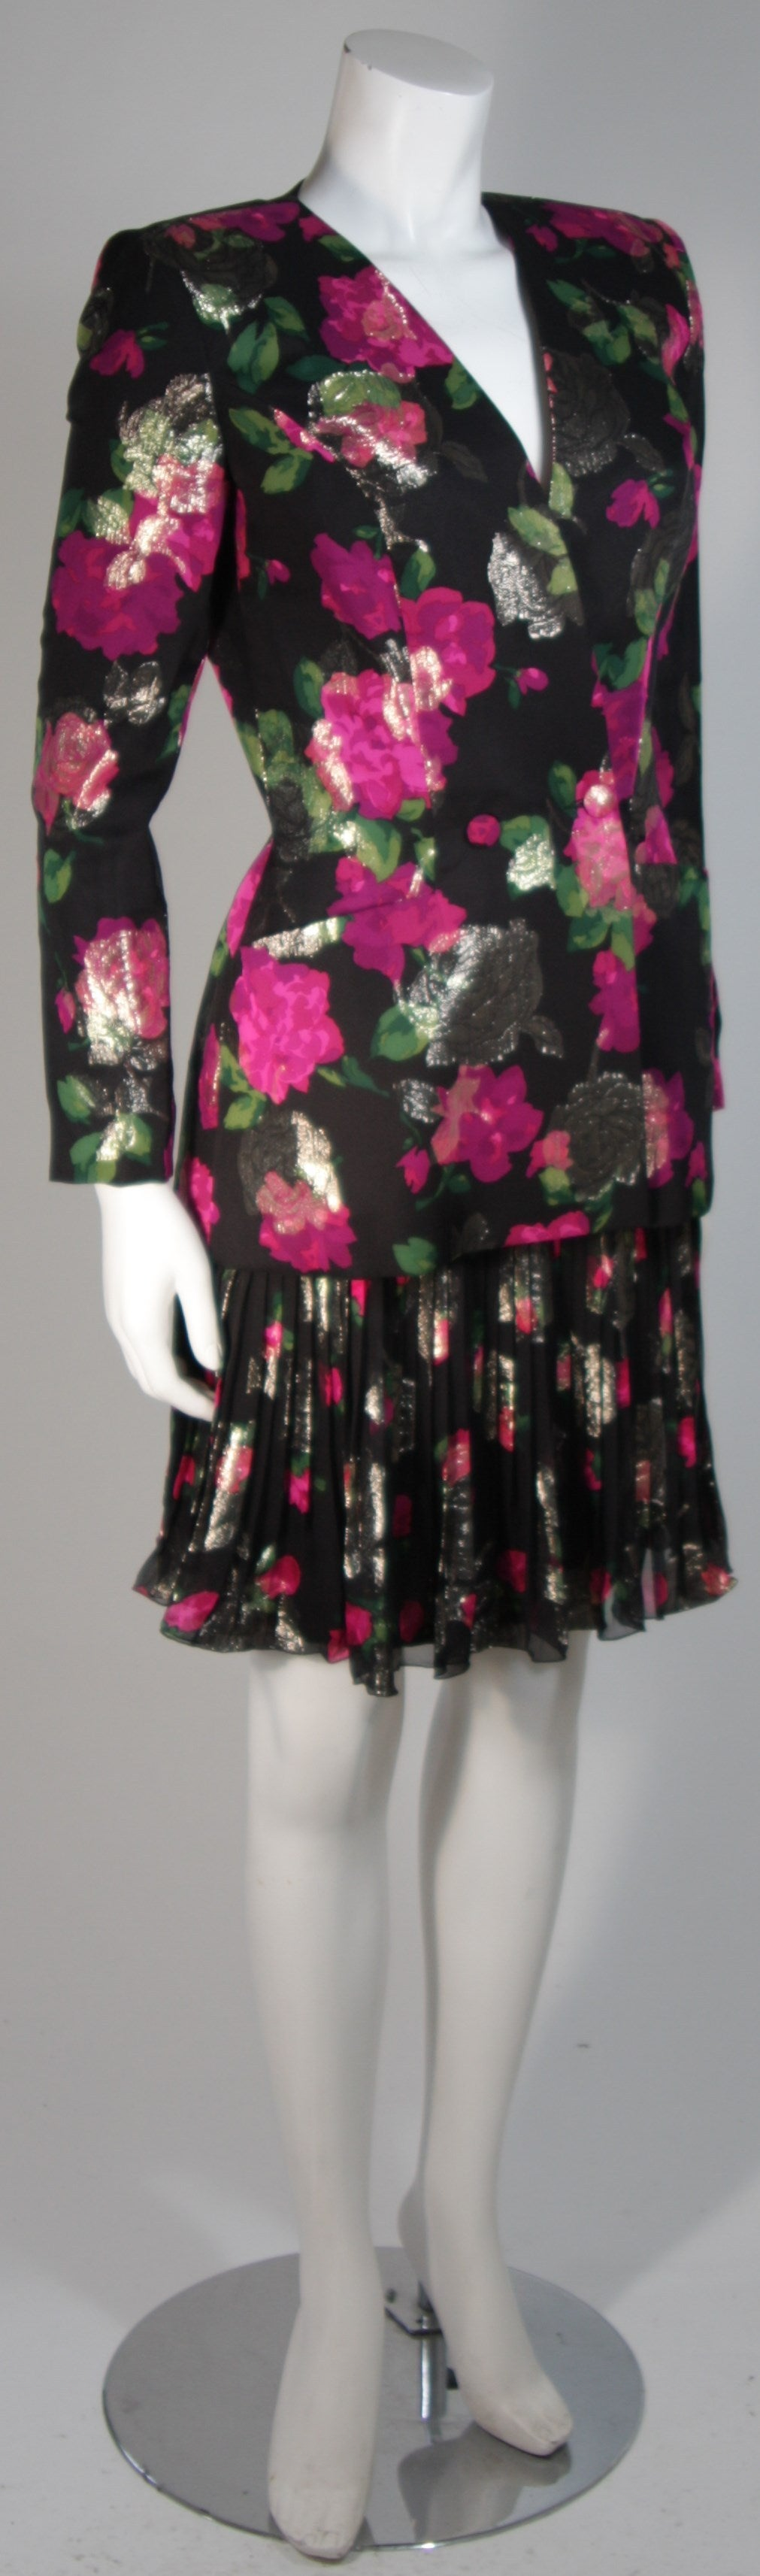 Vicky Tiel Black SilkSuit with Floral Motif and Pleated Chiffon Skirt Size Small In Excellent Condition For Sale In Los Angeles, CA